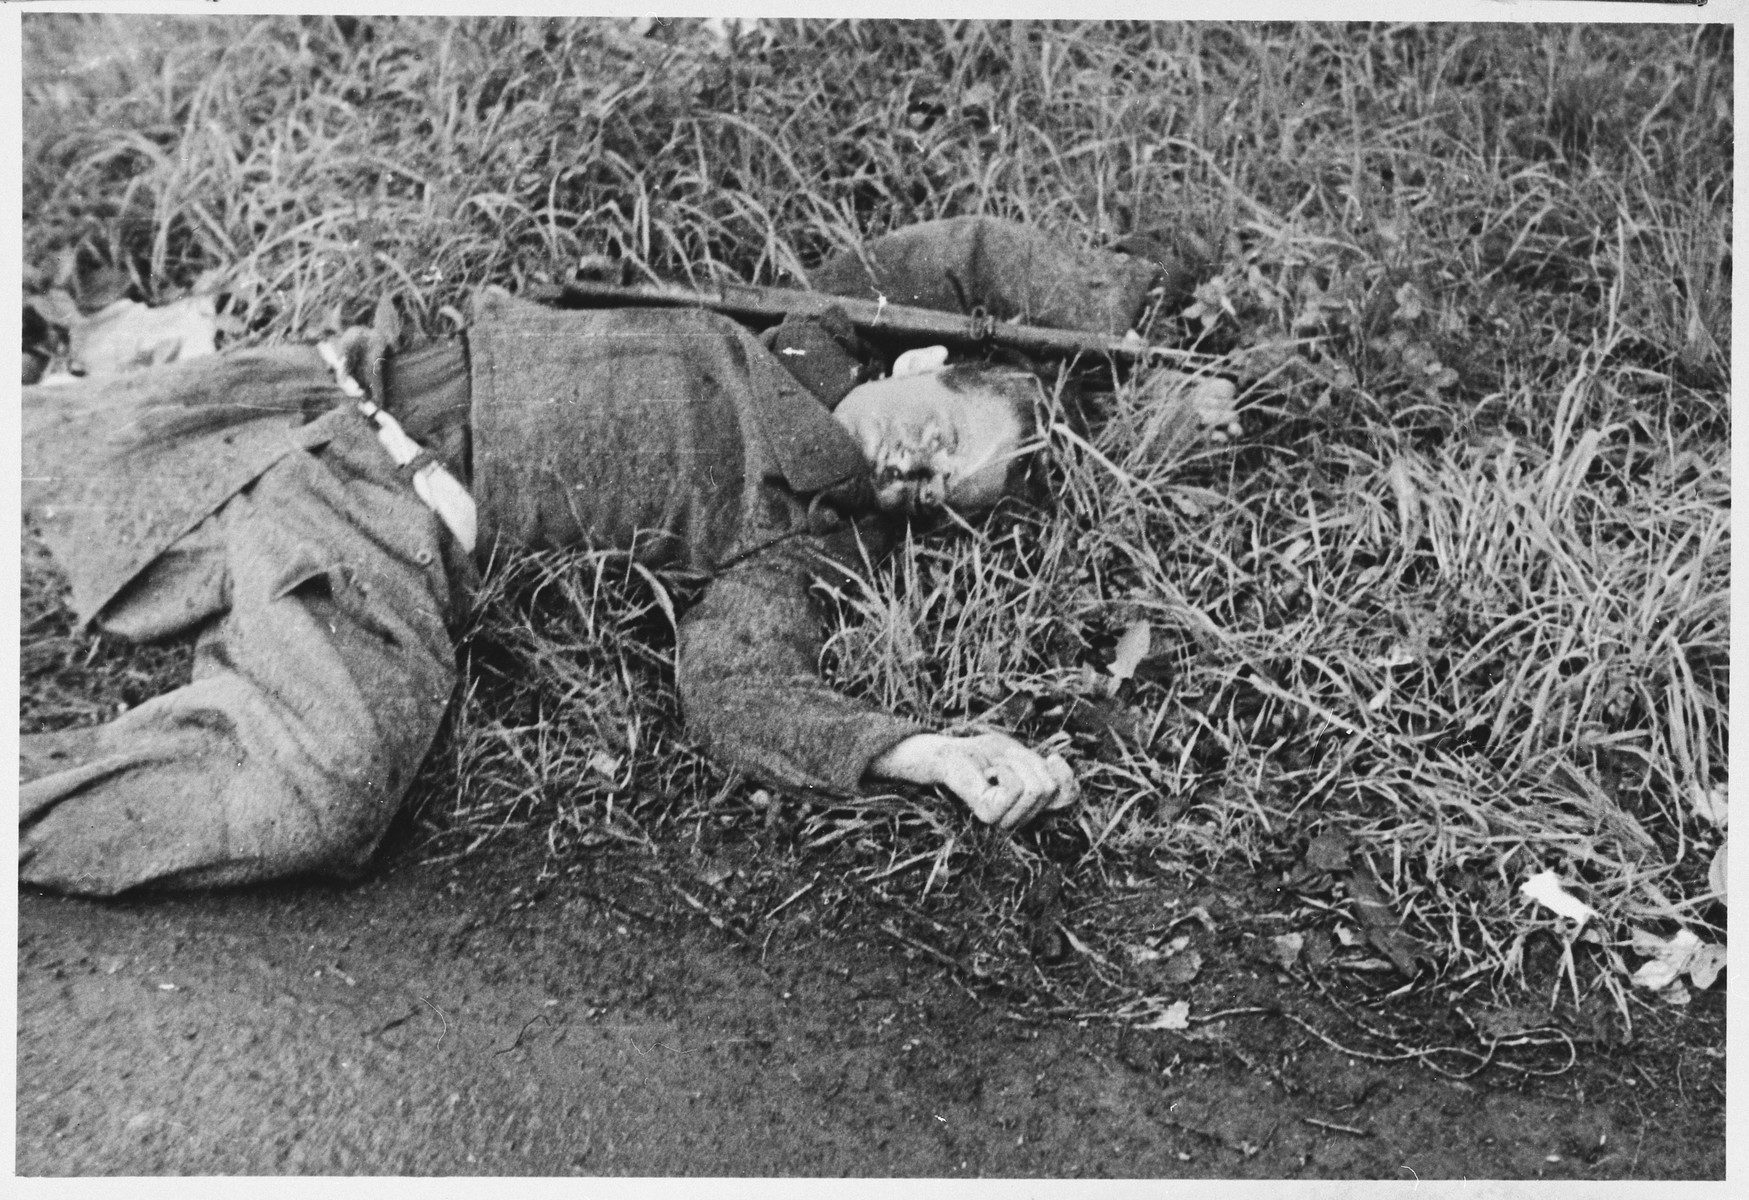 Close-up view of the corpse of an SS guard murdered in a revenge killing in the Dachau concentration camp.